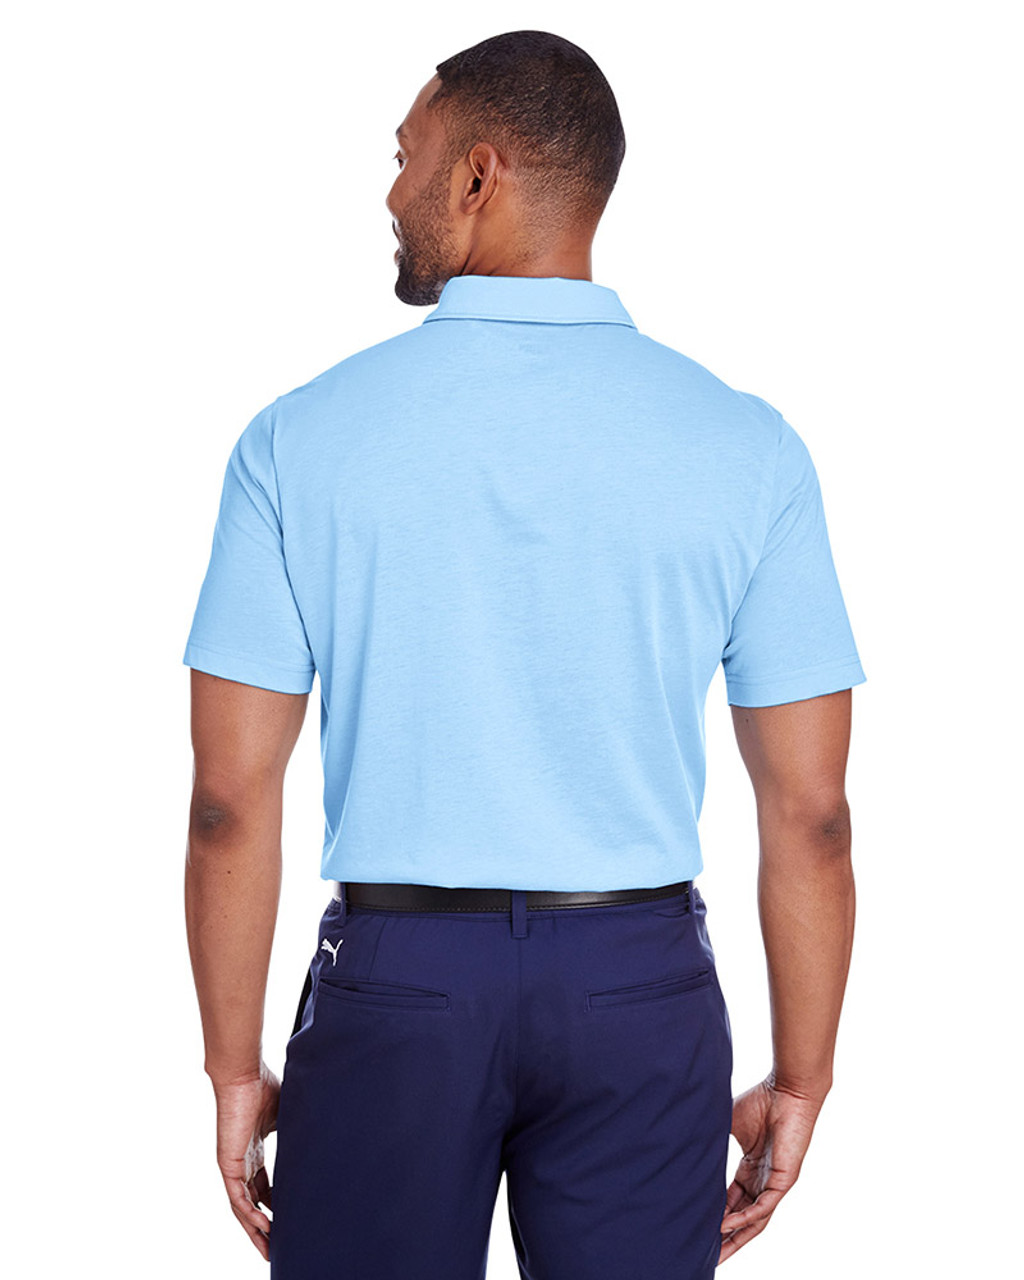 Blue Bell - back, 596920 Puma Golf Men's Fusion Polo | Blankclothing.ca